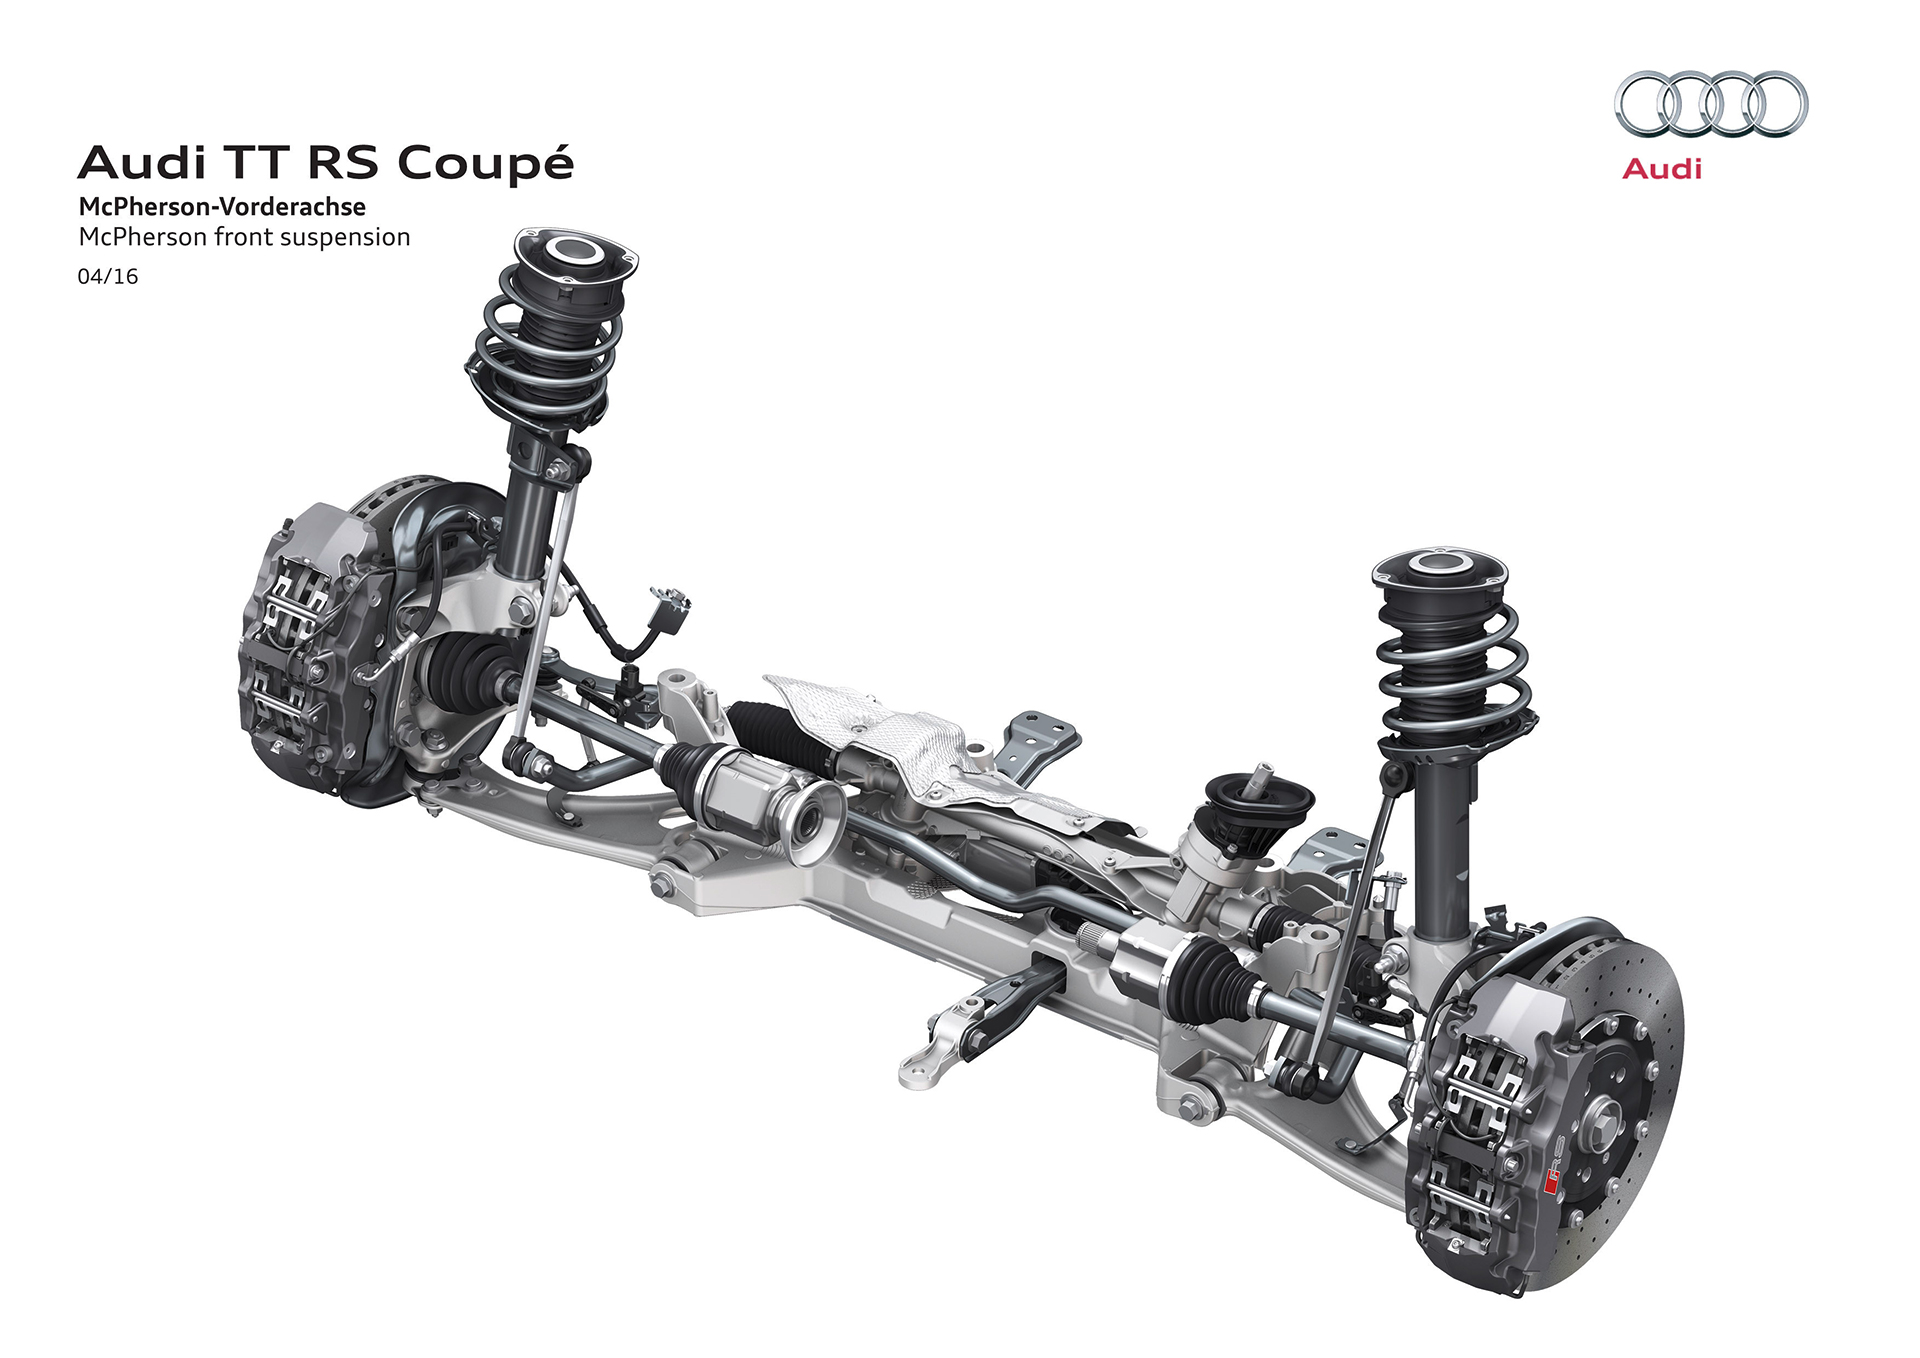 Audi TT RS coupe - 2016 - front suspension